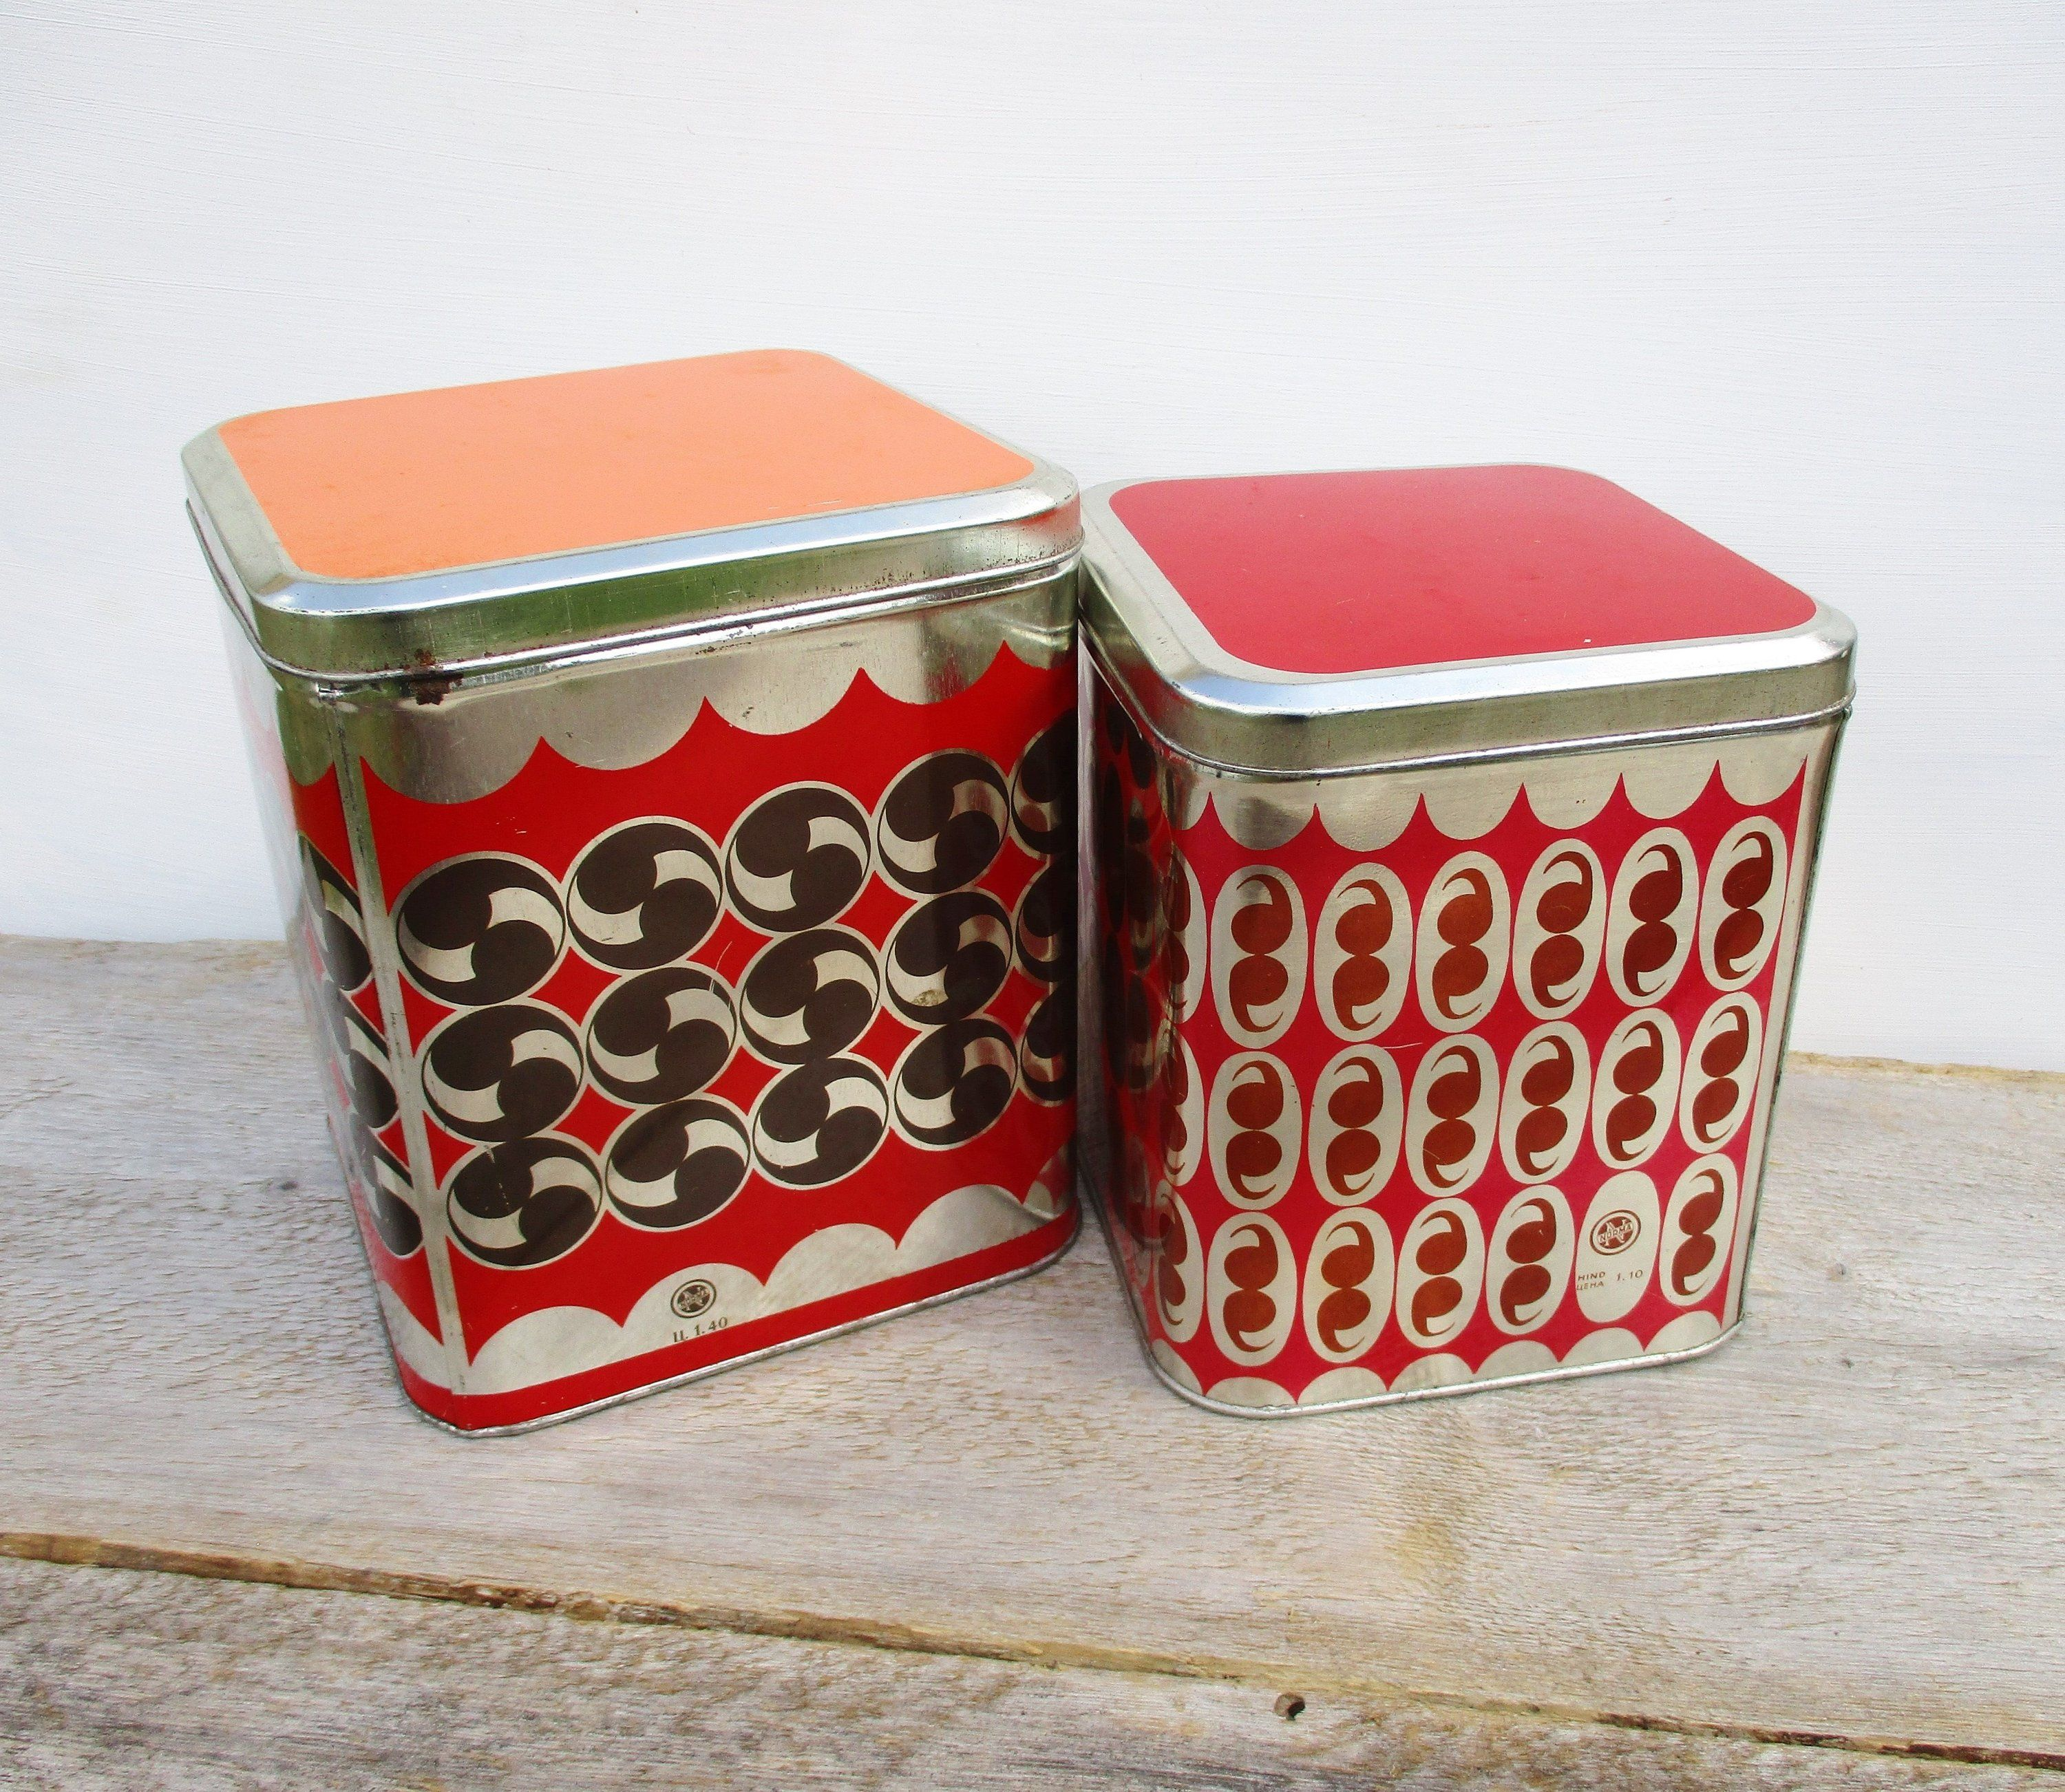 Tin Canister Set Two Food Storage Containers Vintage Kitchen Organizer Red Lidded Metal Box Soviet Unio Food Storage Containers Canister Sets Tin Canisters